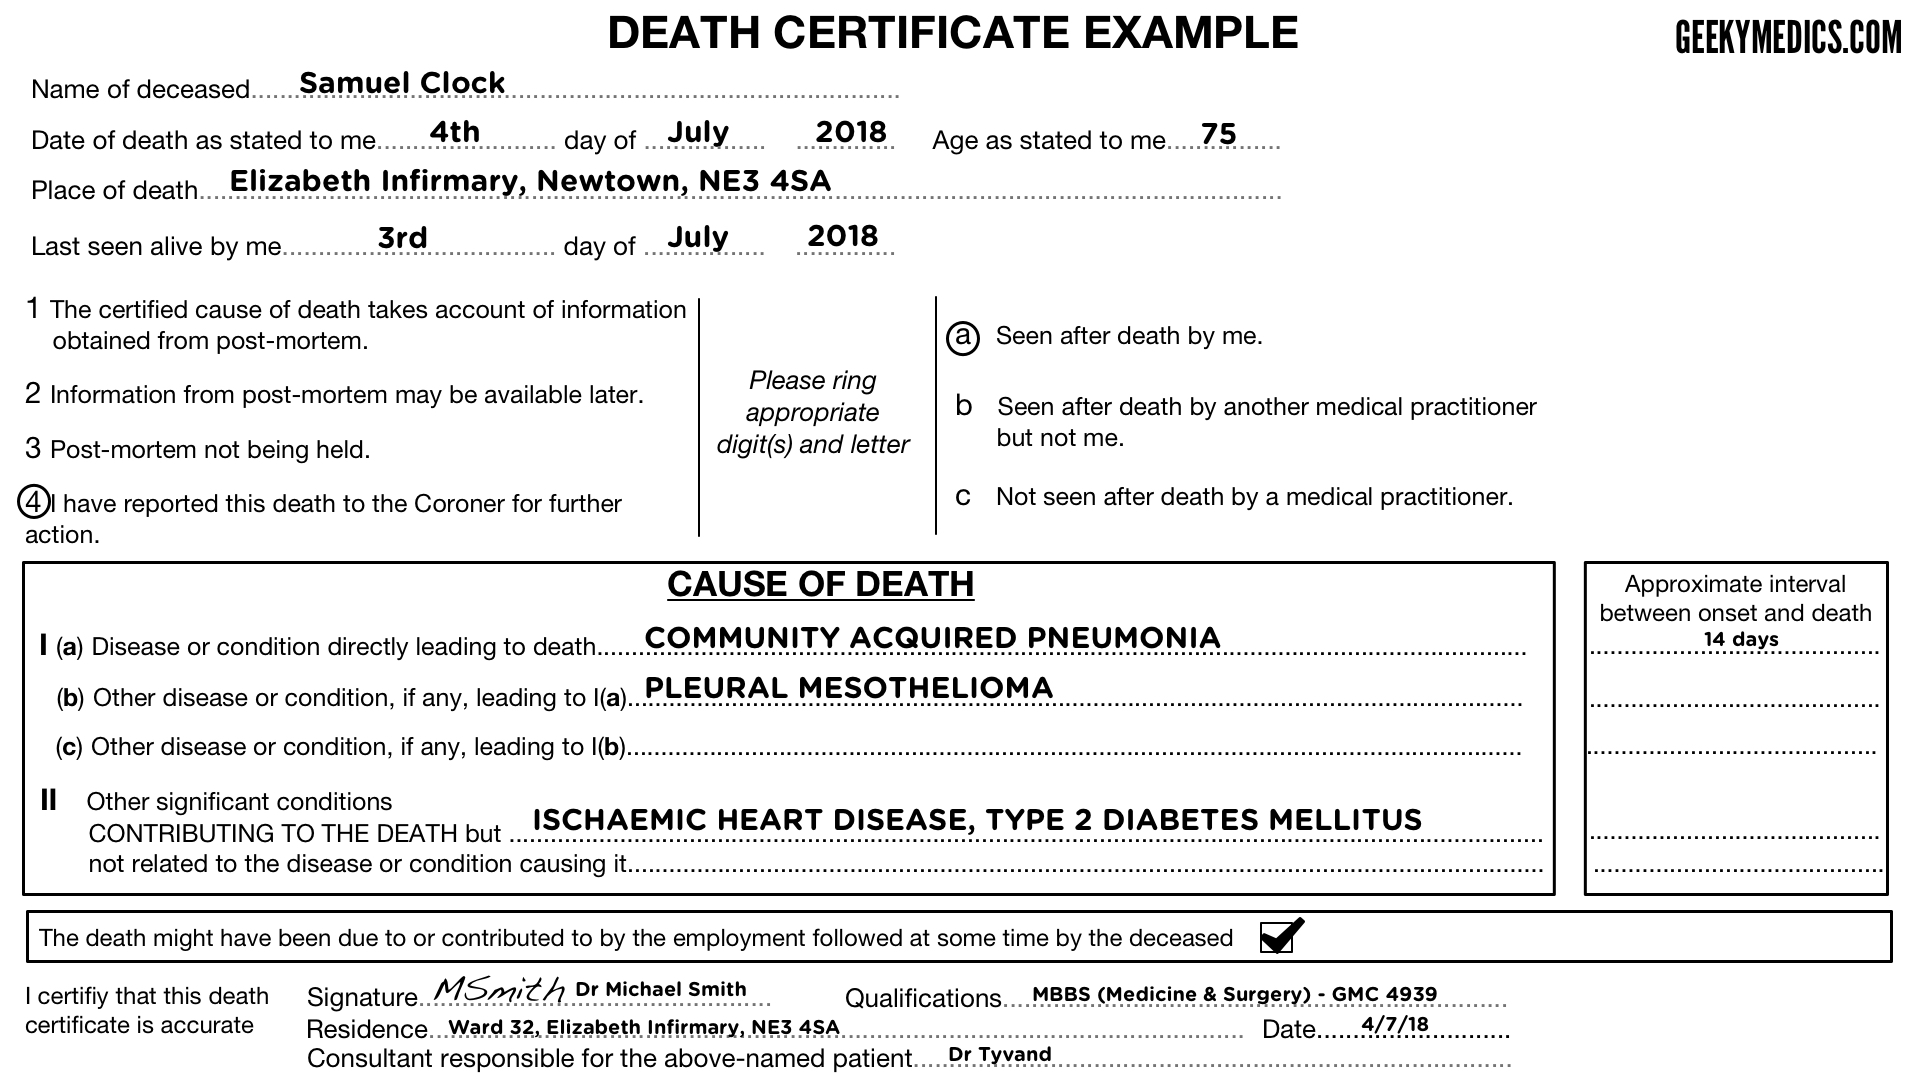 Death certificate example clock geeky medics death certificate example clock yelopaper Images